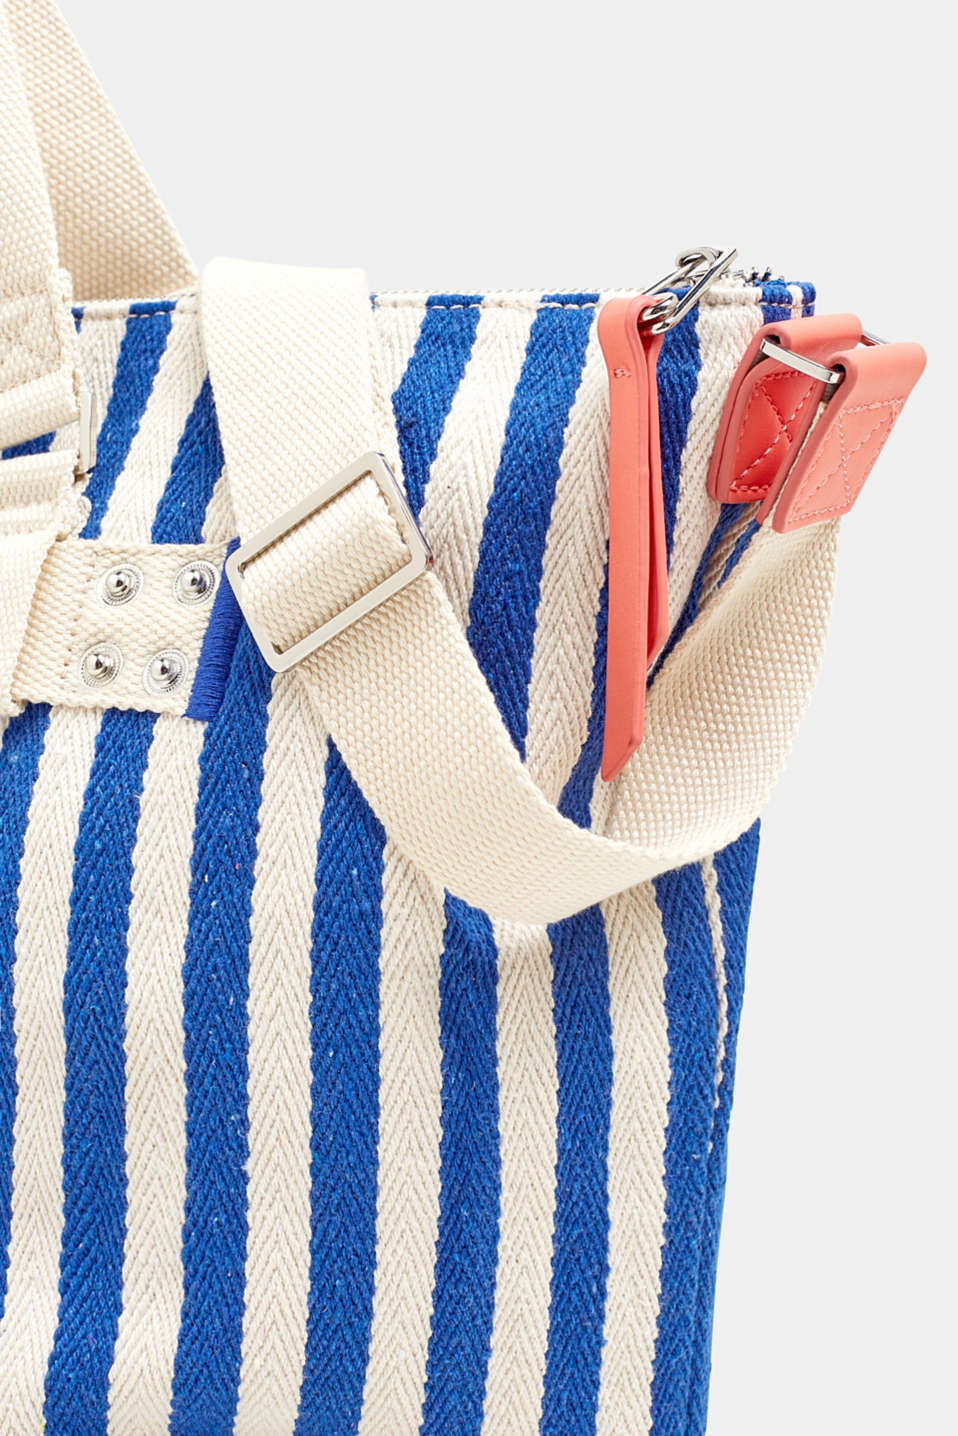 Striped cotton/canvas tote bag, BRIGHT BLUE, detail image number 3